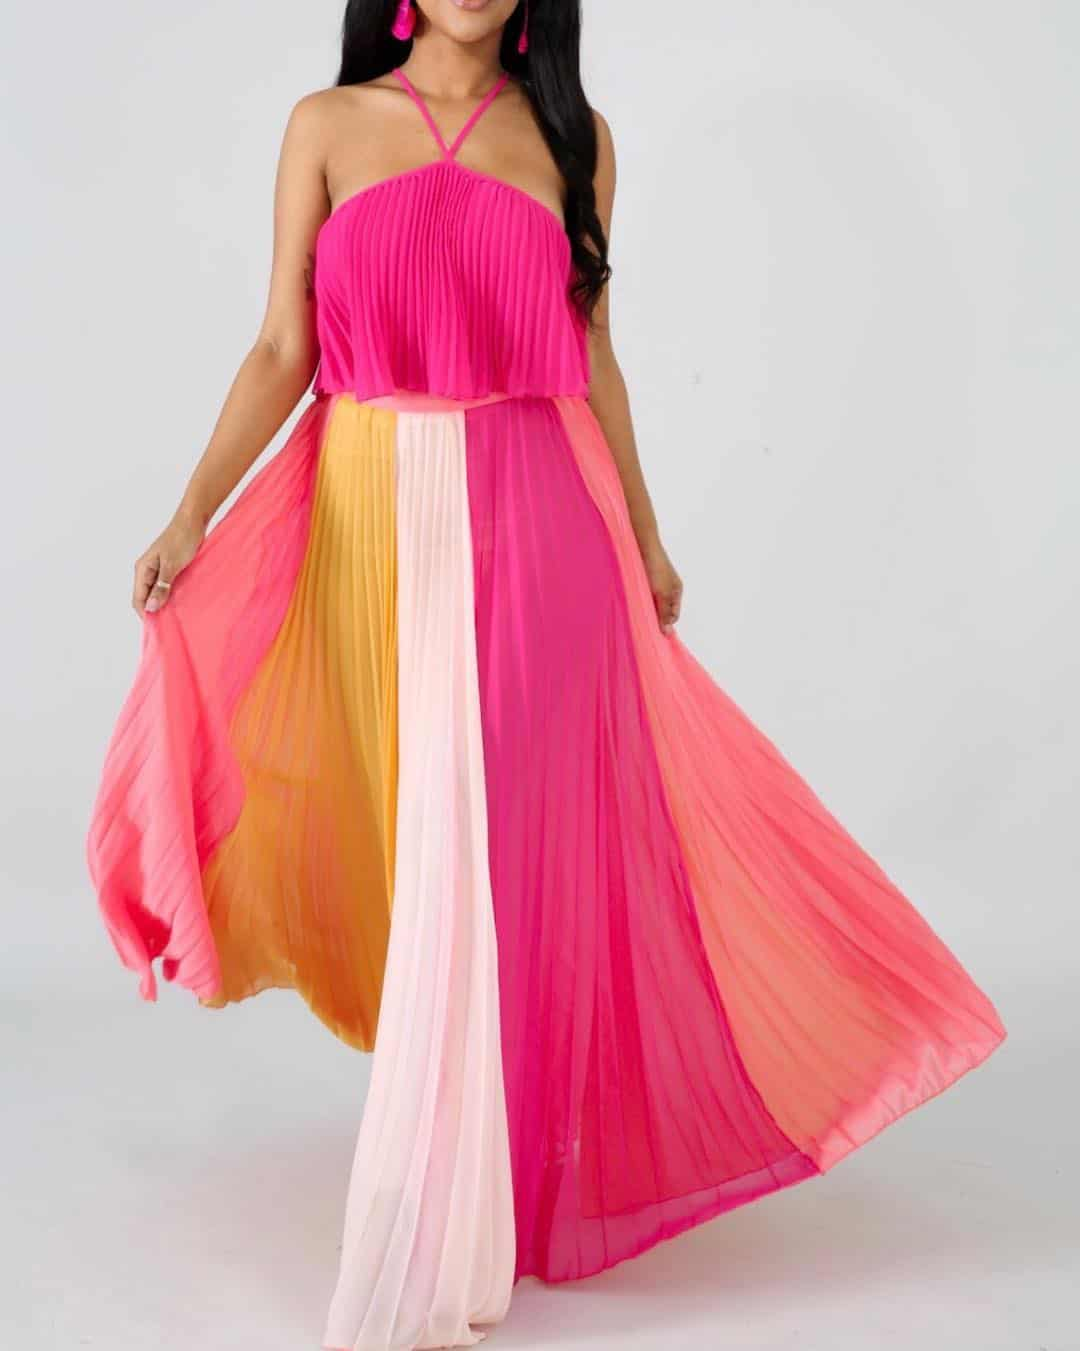 Pleated casual dresses 2020